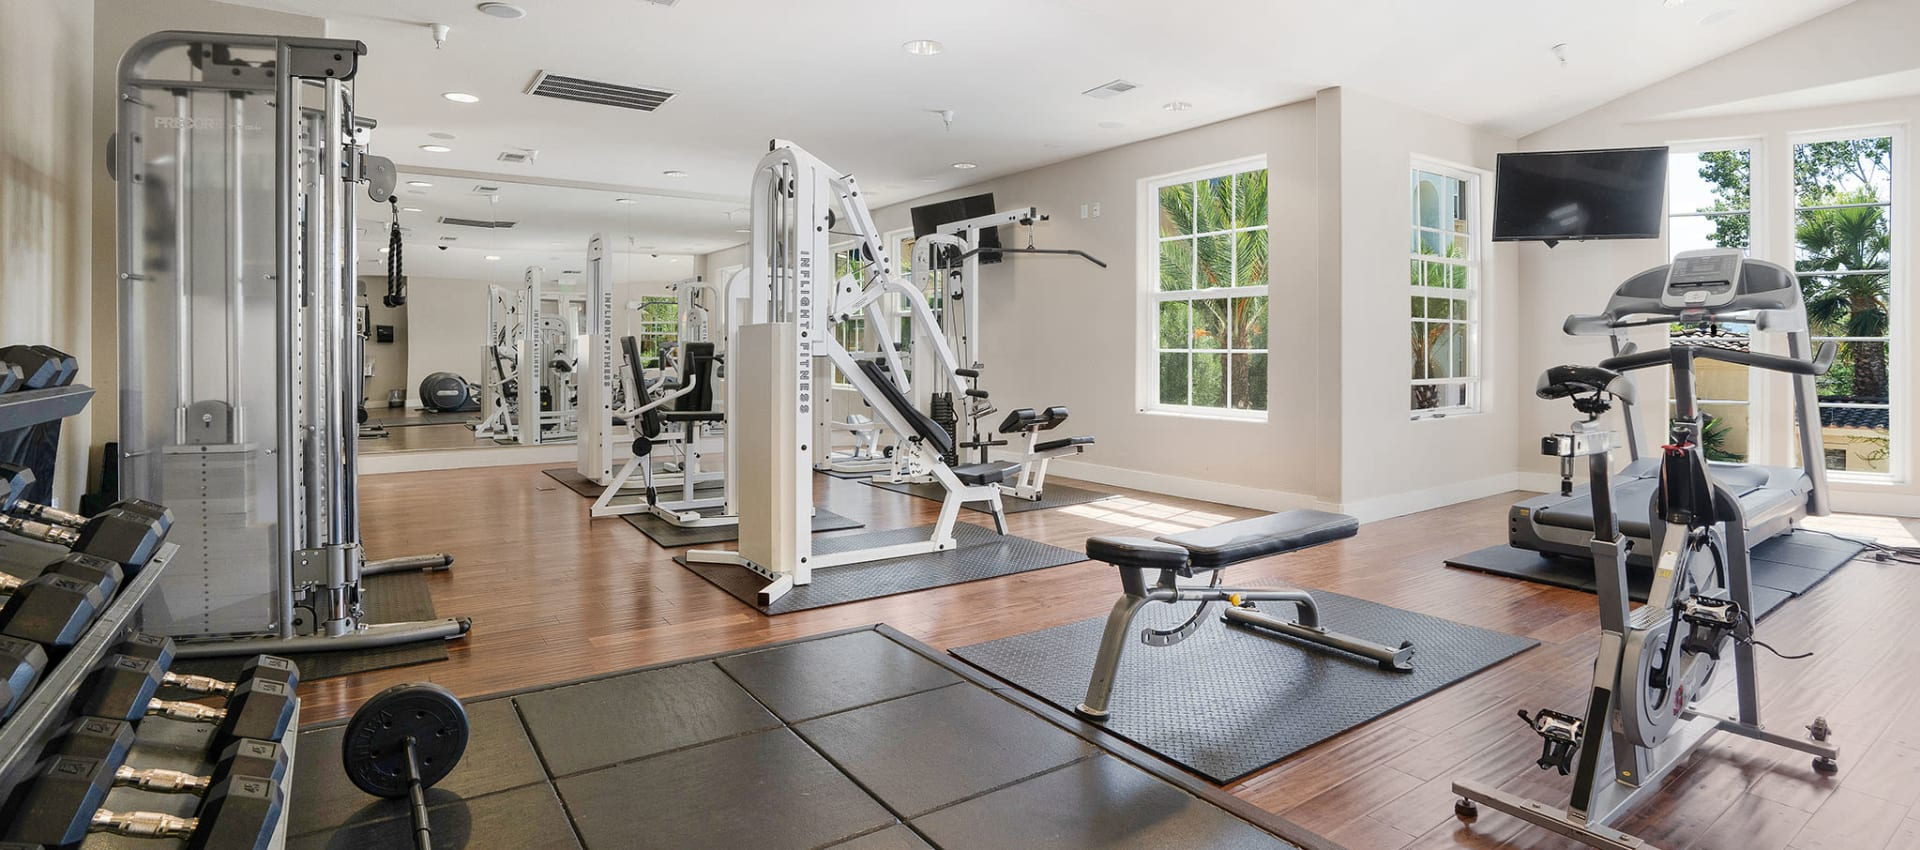 Free weights in the fitness center at Park Central in Concord, California